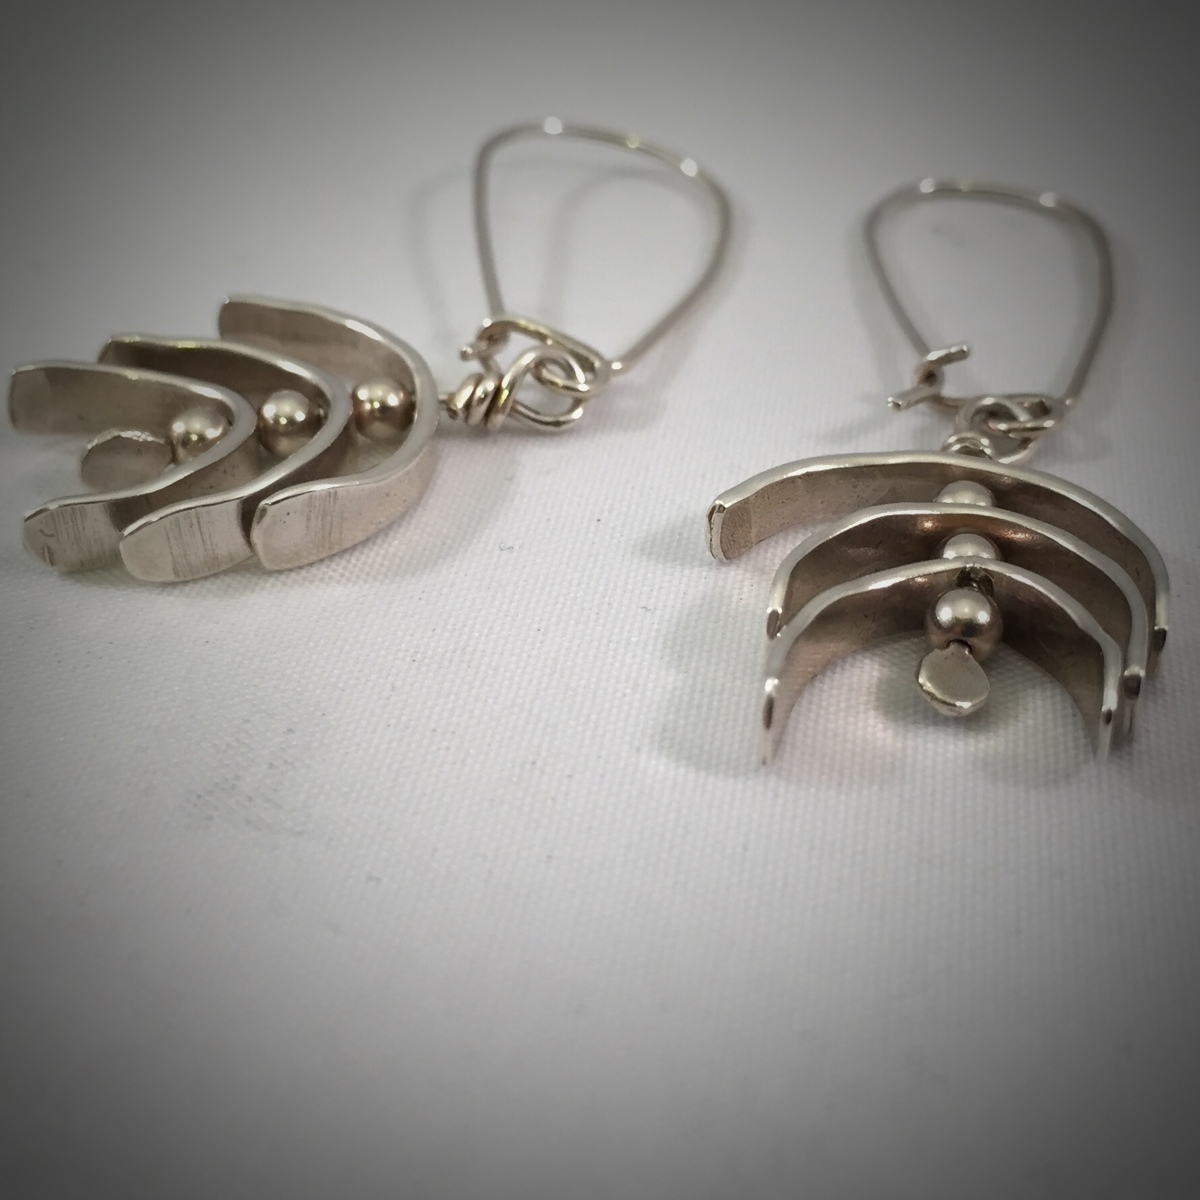 Kinetic Silver Whirligig Earrings 1 (large view)